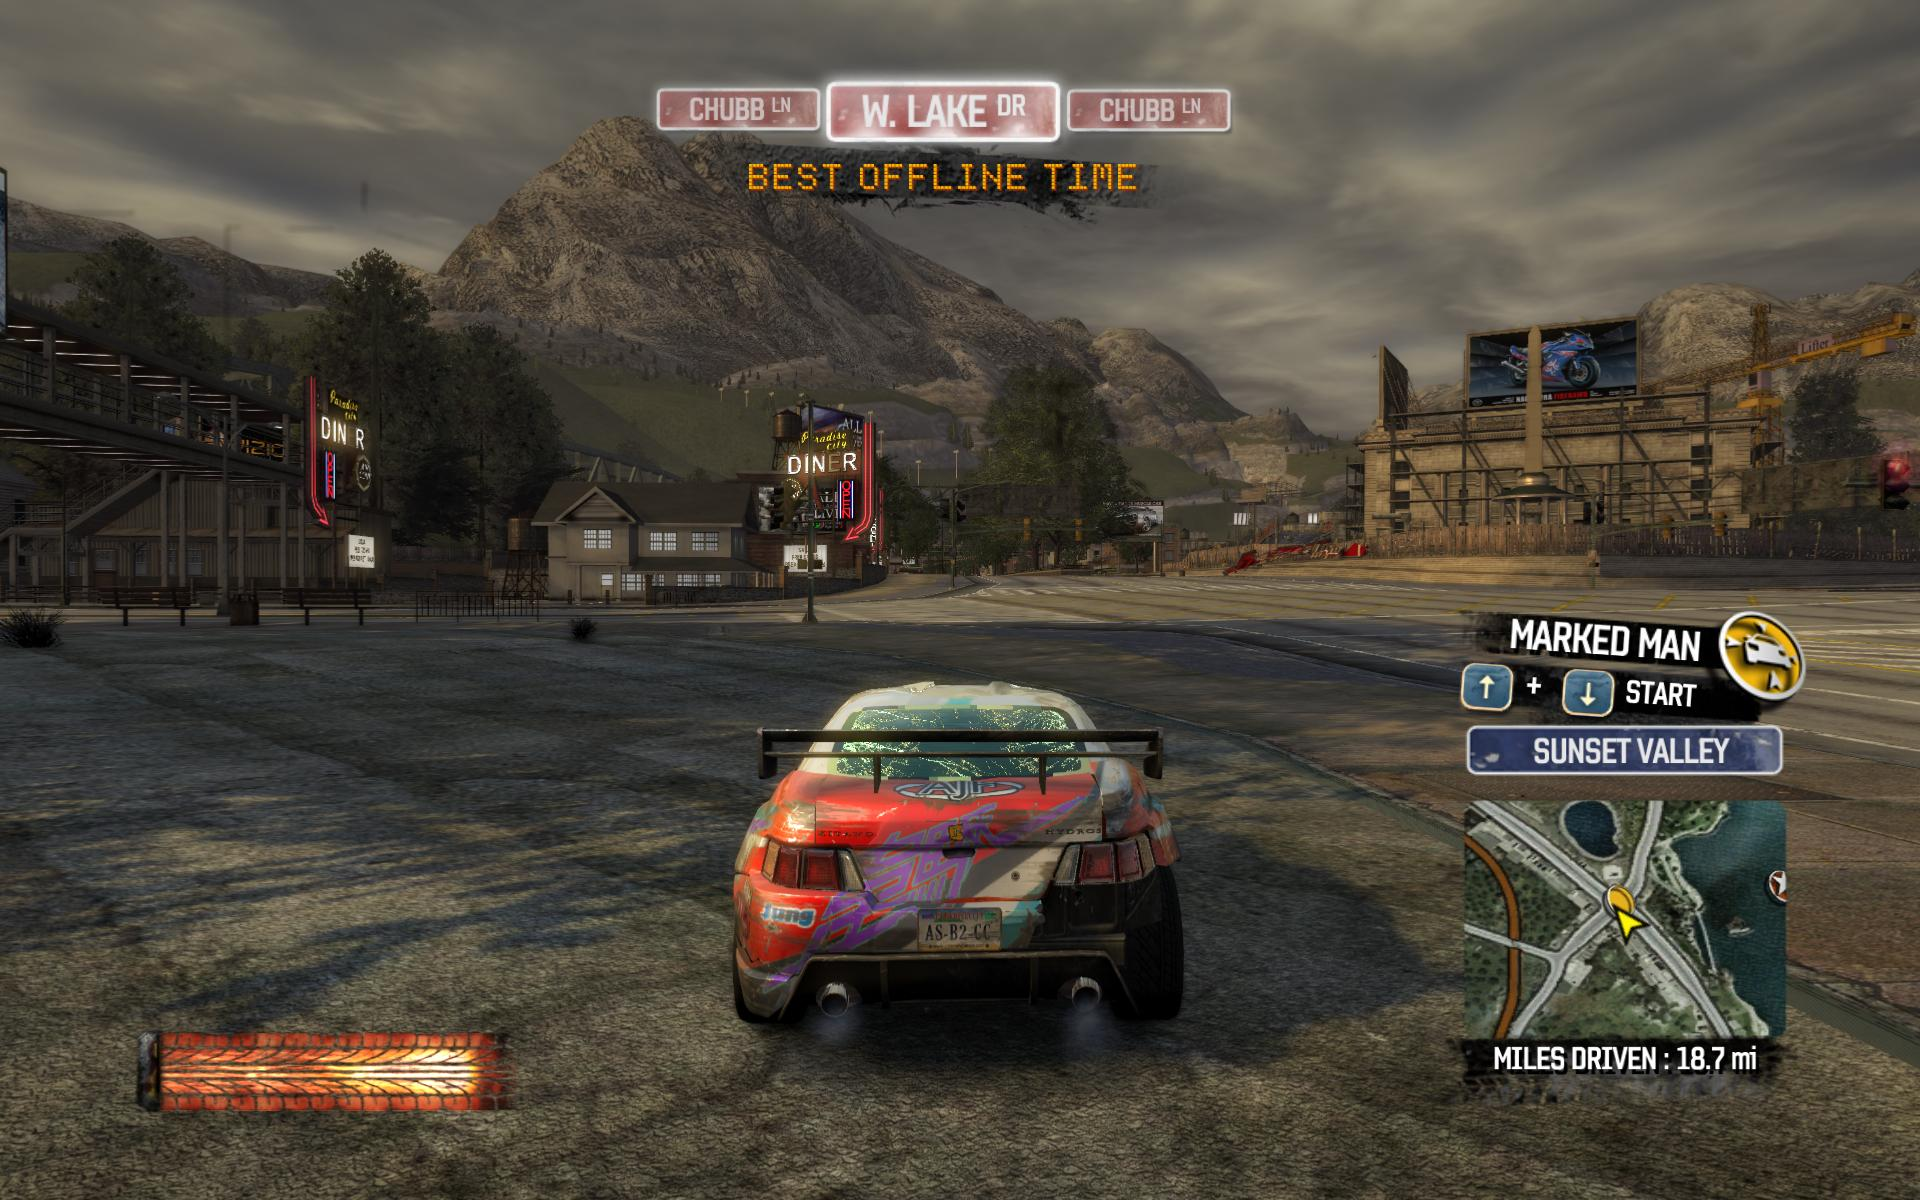 http://images.bit-tech.net/content_images/2009/02/burnout-paradise-pc-review/benvlow.jpg